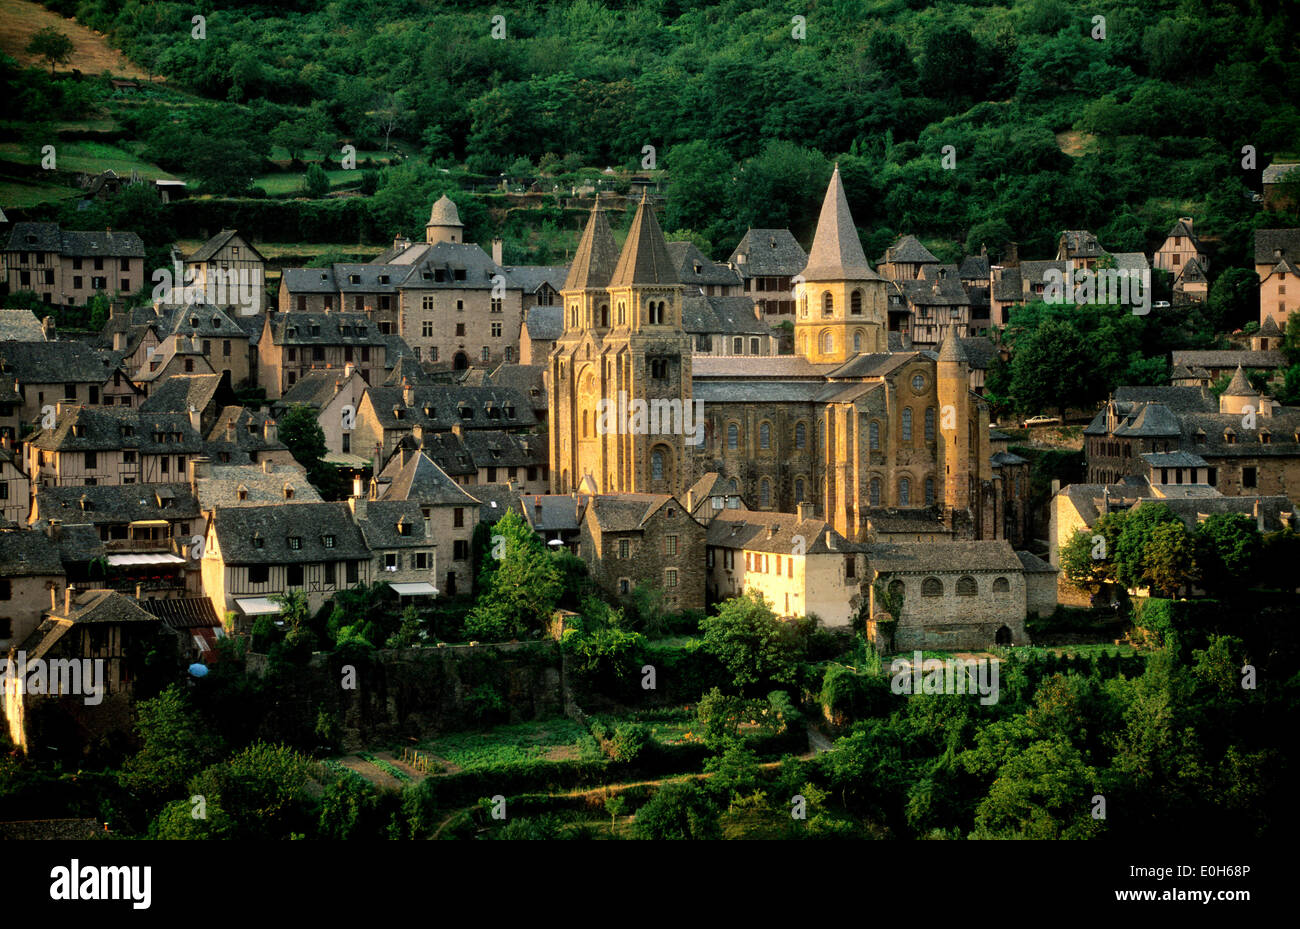 Abbatiale Sainte Foy abbey church on the Way of St. James in Conques village, Aveyron, Midi-Pyrenees, France - Stock Image